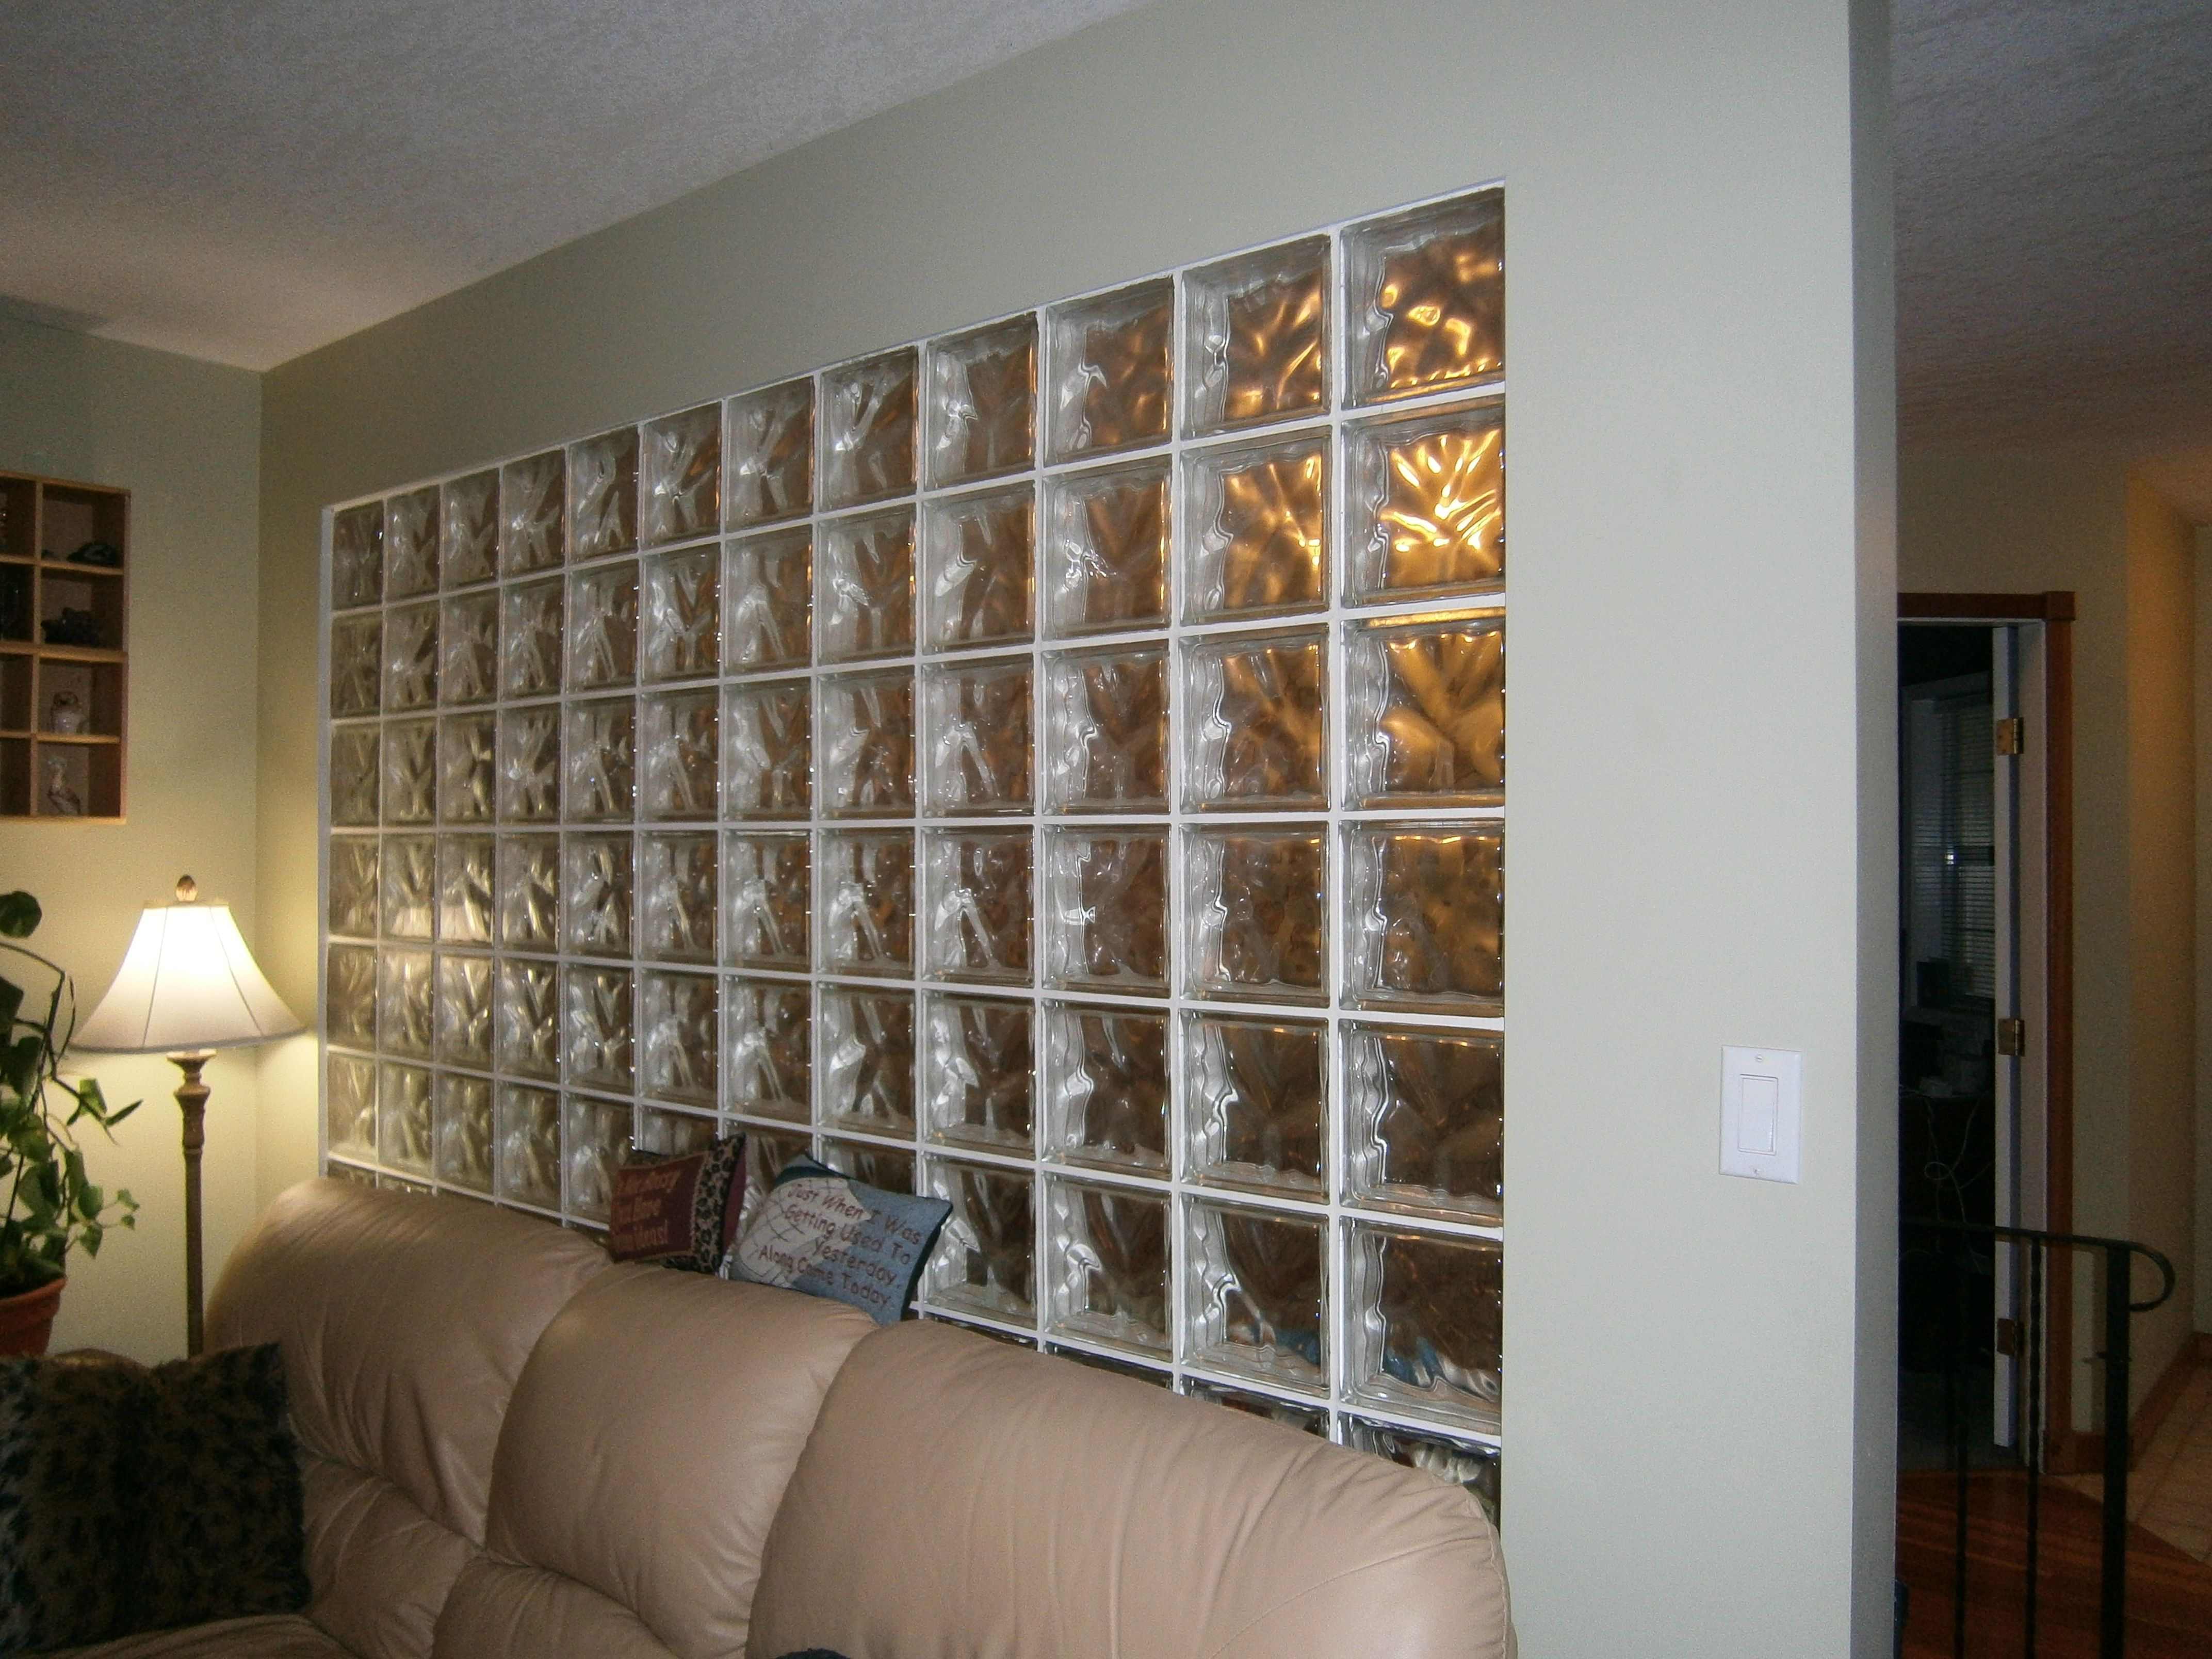 Wonderful Glass Block Wall In The Former Family Home. Pretty! Amazing Pictures